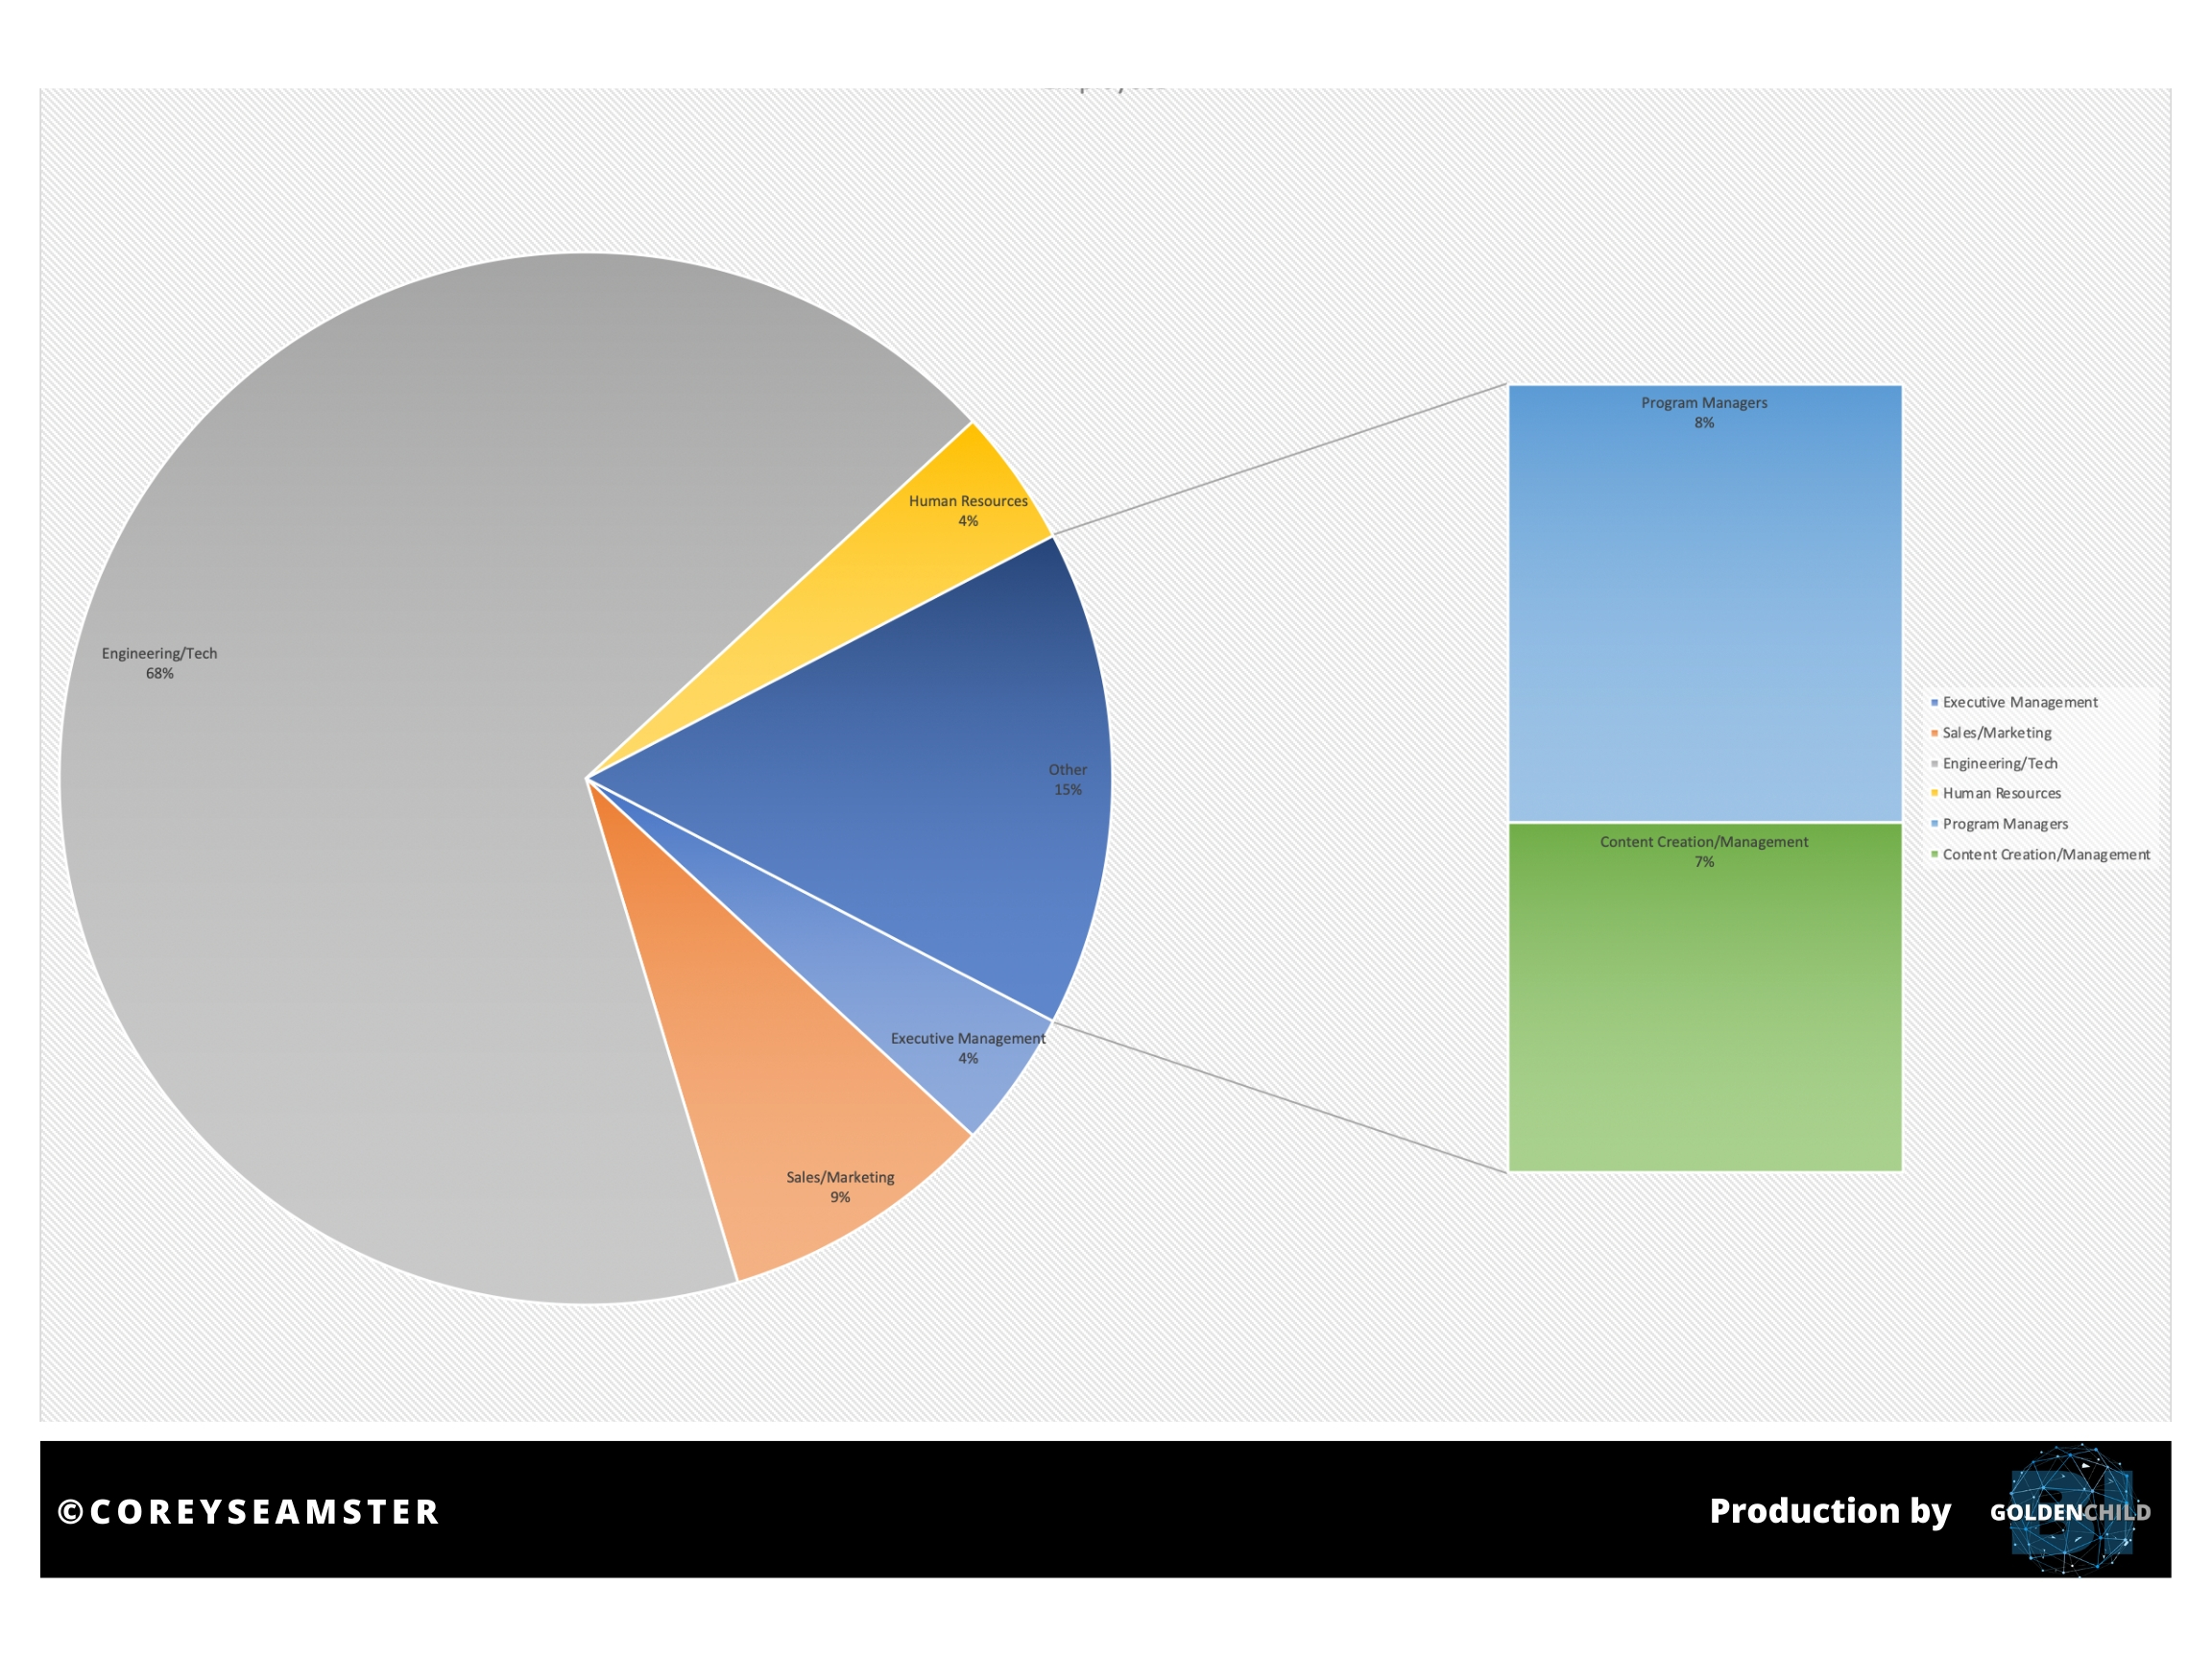 Source: Corey Seamster (2020) | Image: 3DR - Sample Data Pie Chart of Personnel by Professional Category